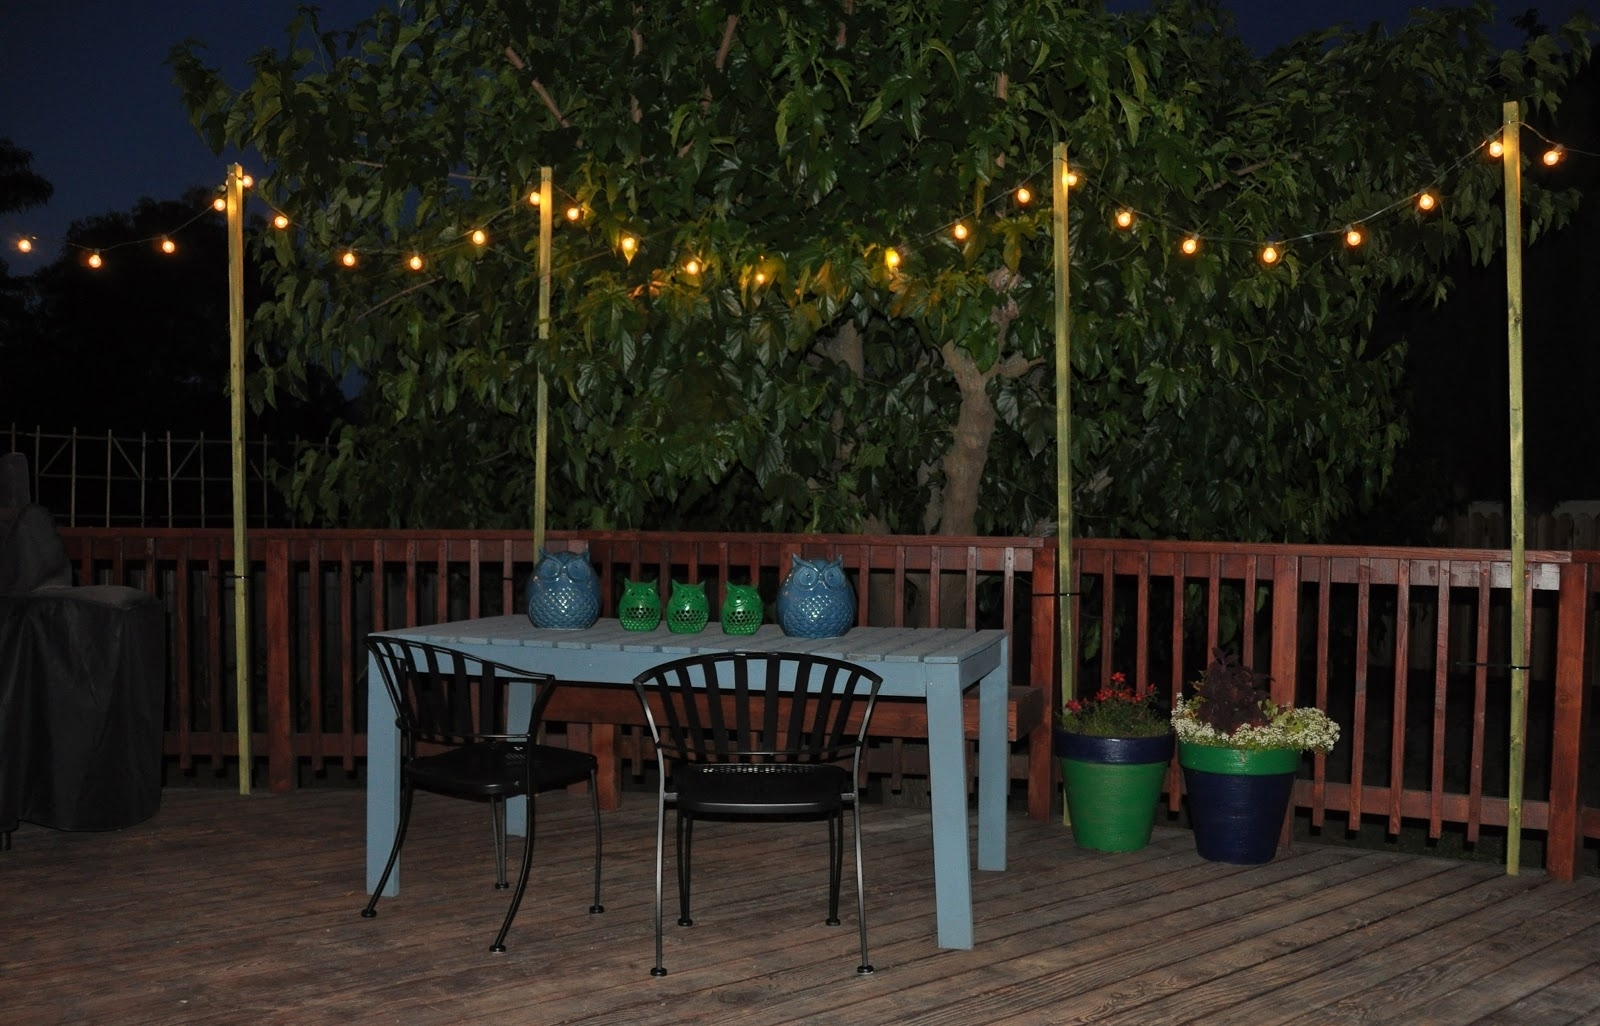 Glamorous Backyard String Lights Decorative Indoor Porch Led Hanging In Widely Used Outdoor Hanging Deck Lights (Gallery 4 of 20)